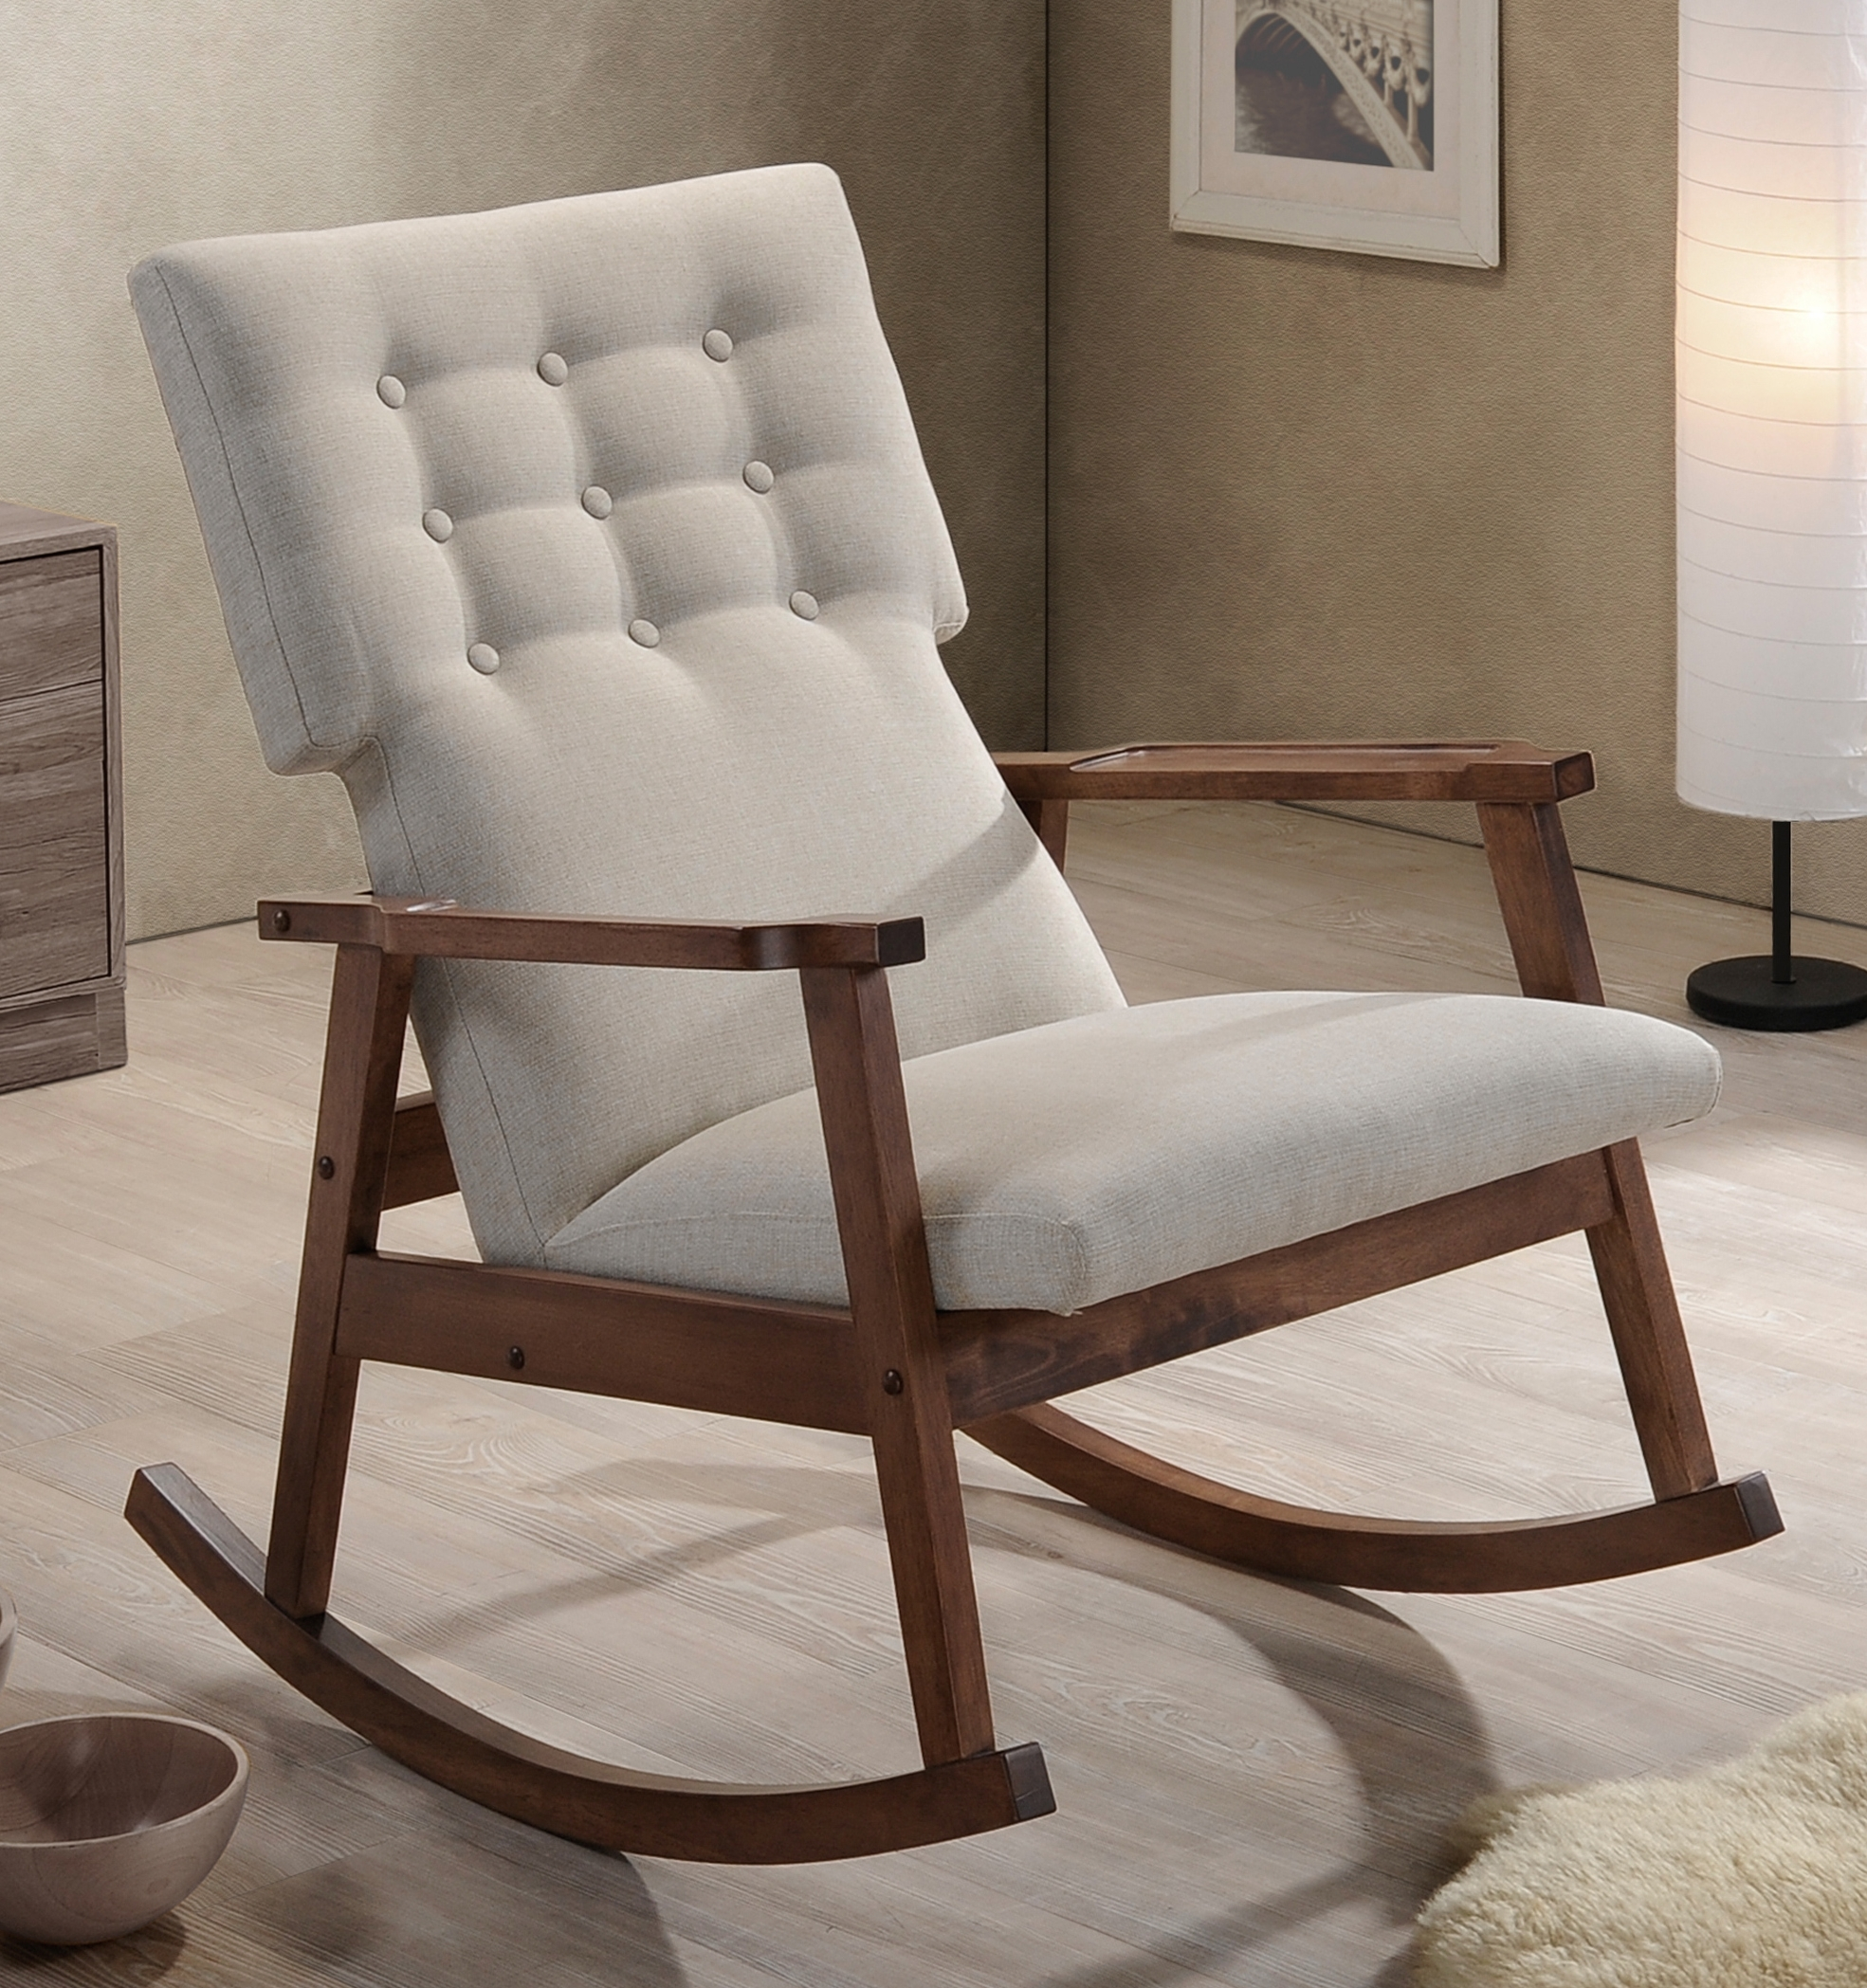 2018 Rocking Chairs At Wayfair Pertaining To Livingroom : Agreeable Fabric Rocking Chairs Living Room Furniture (View 8 of 20)